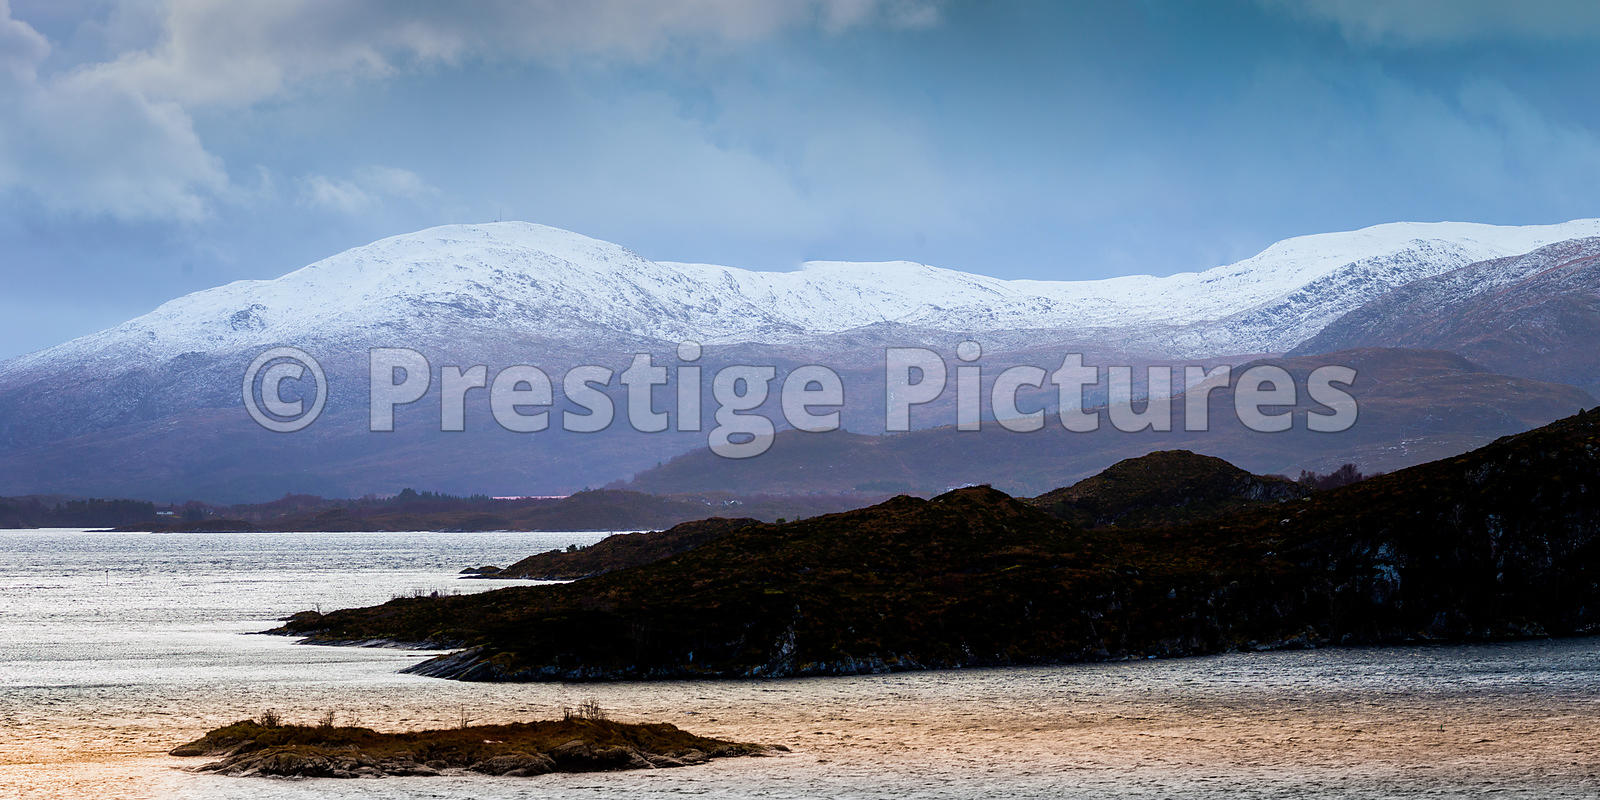 Landscape of Snow-Capped Mountains and Coastline near Herøy, Norway